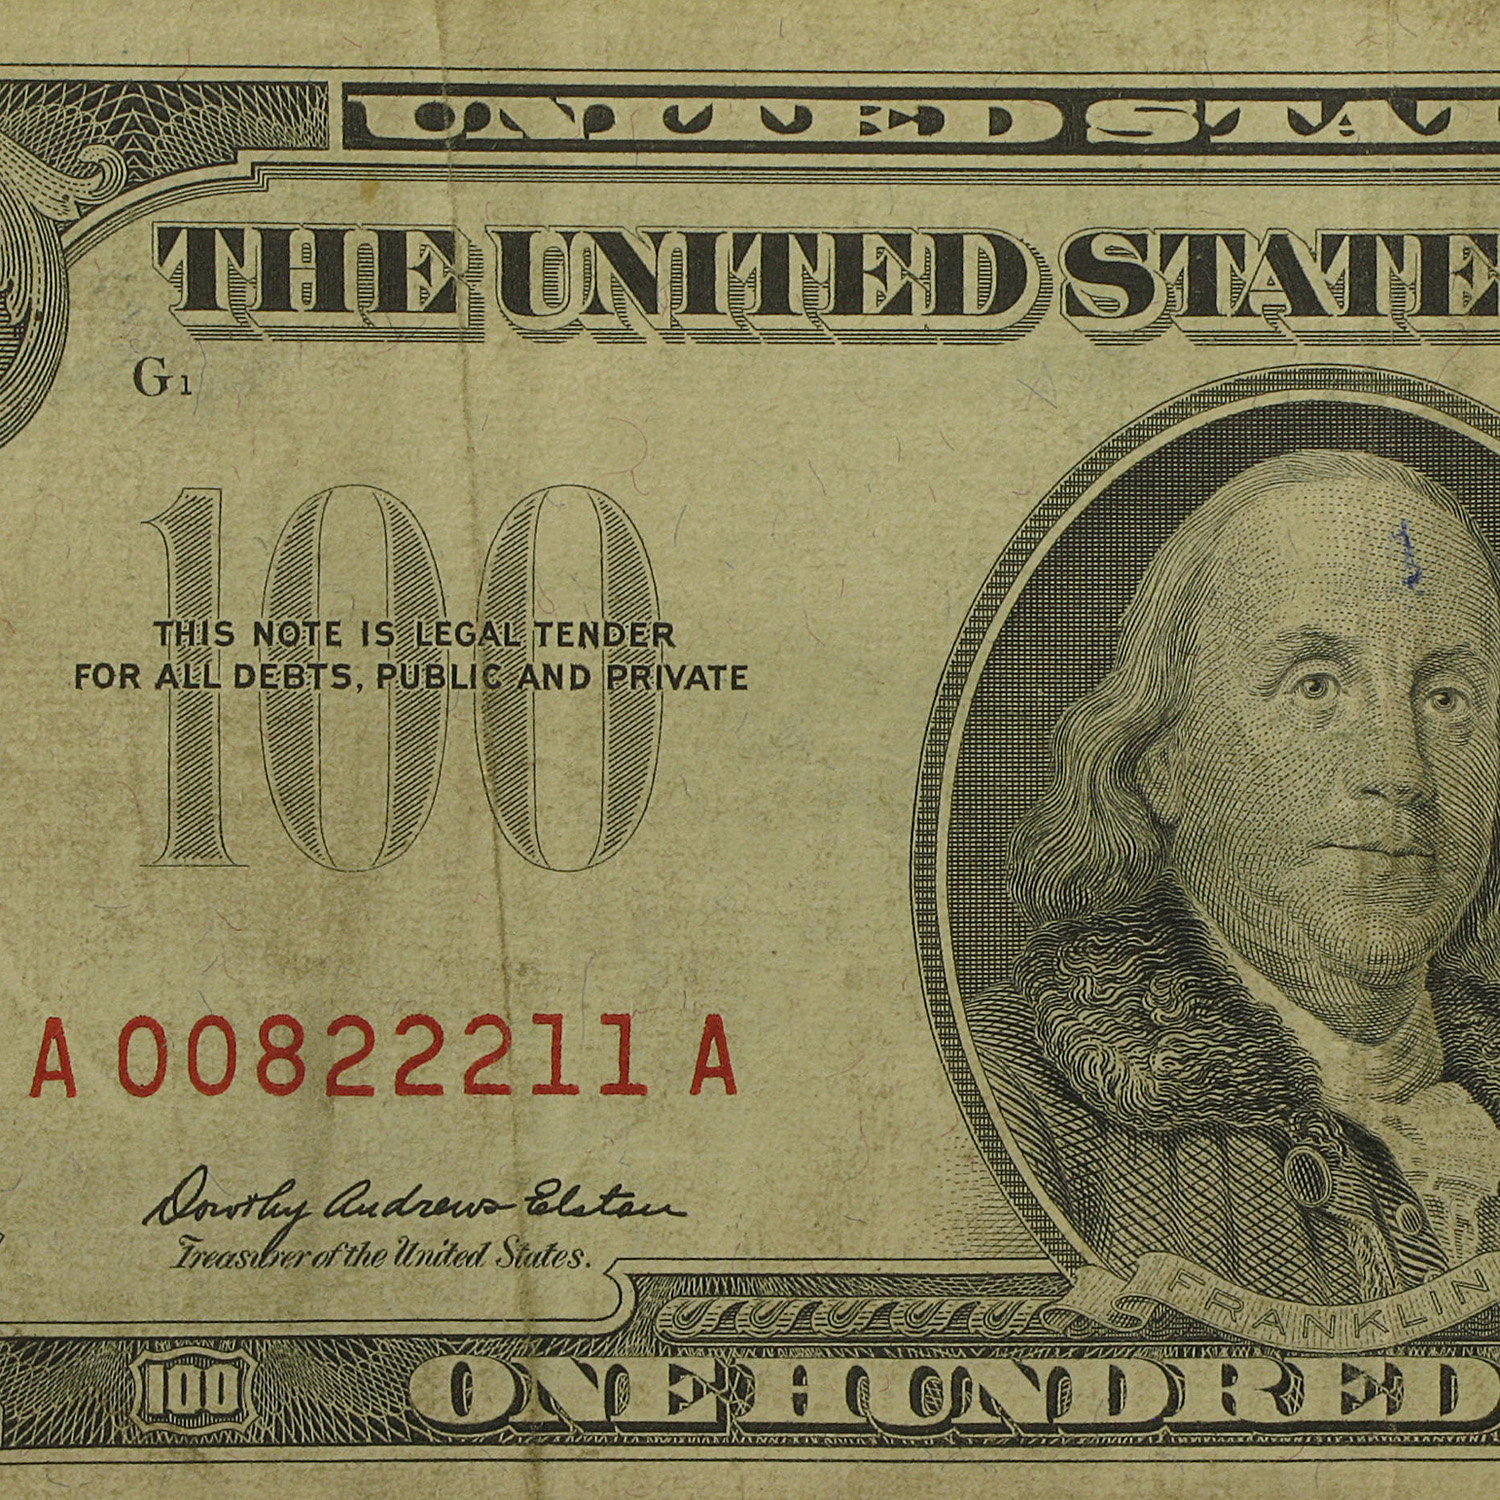 1966-A $100 U. S. Note Red Seal Fine